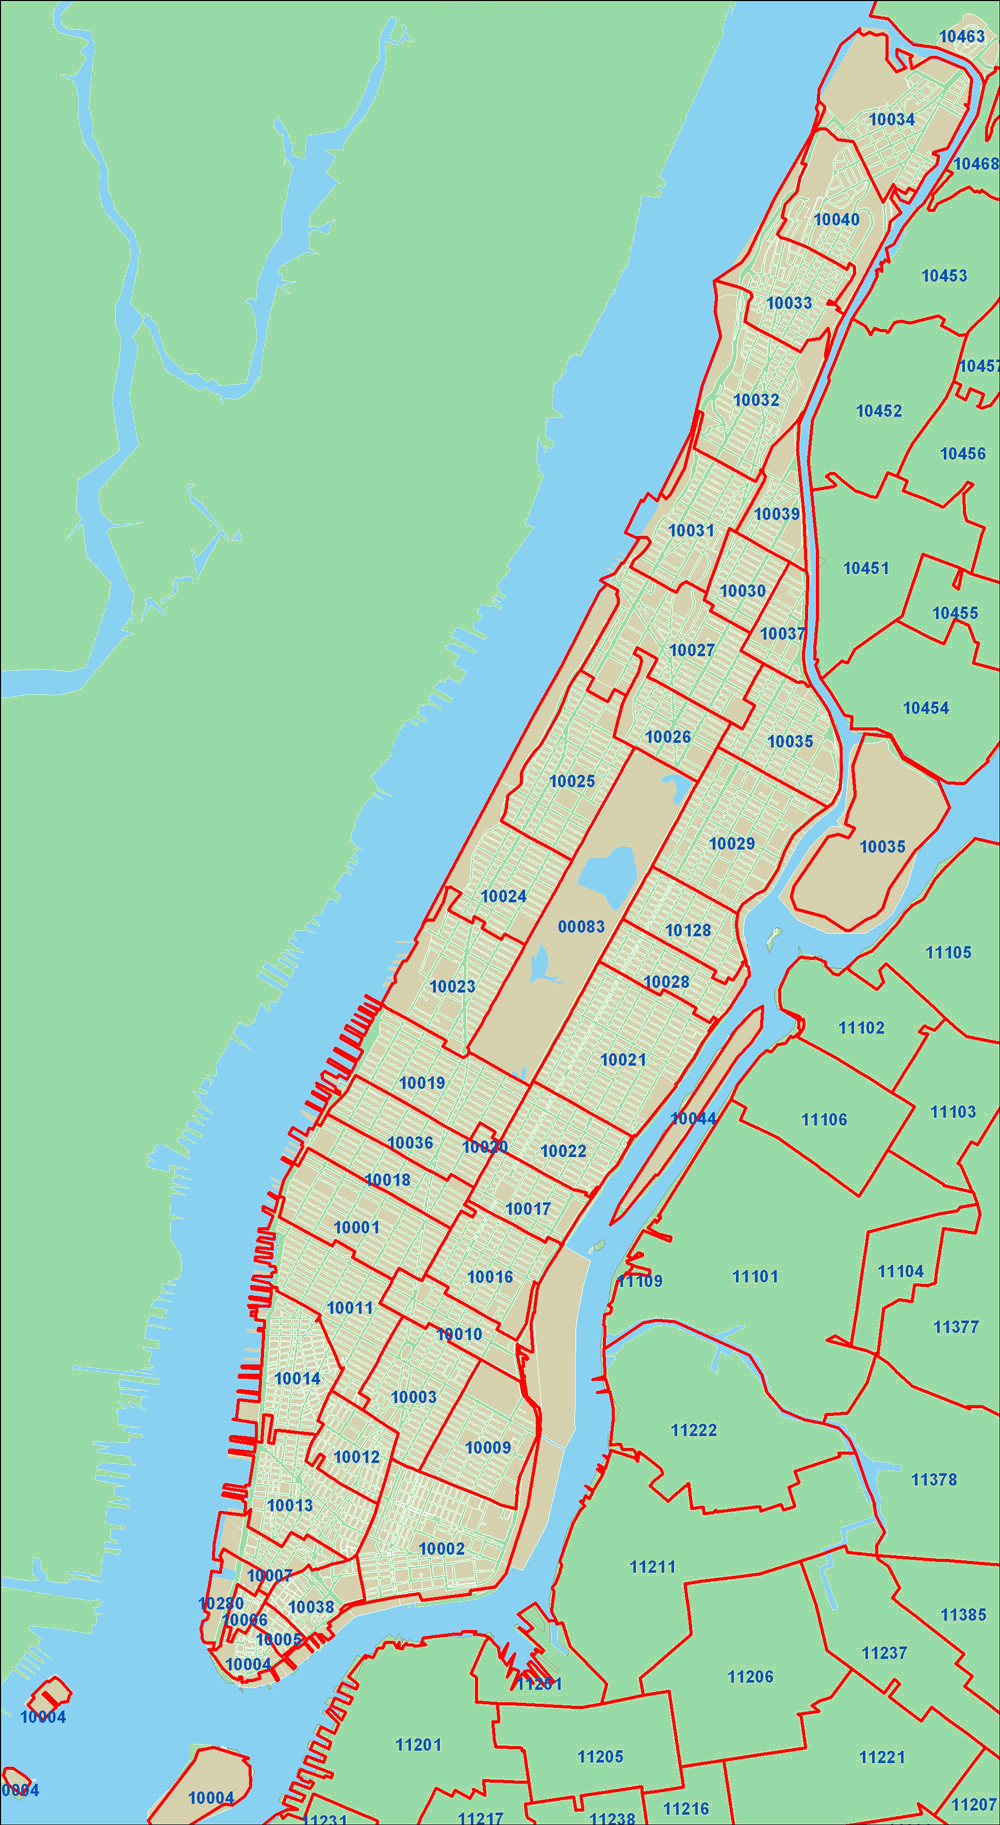 Detailed zip codes map of New York city. New York city detailed